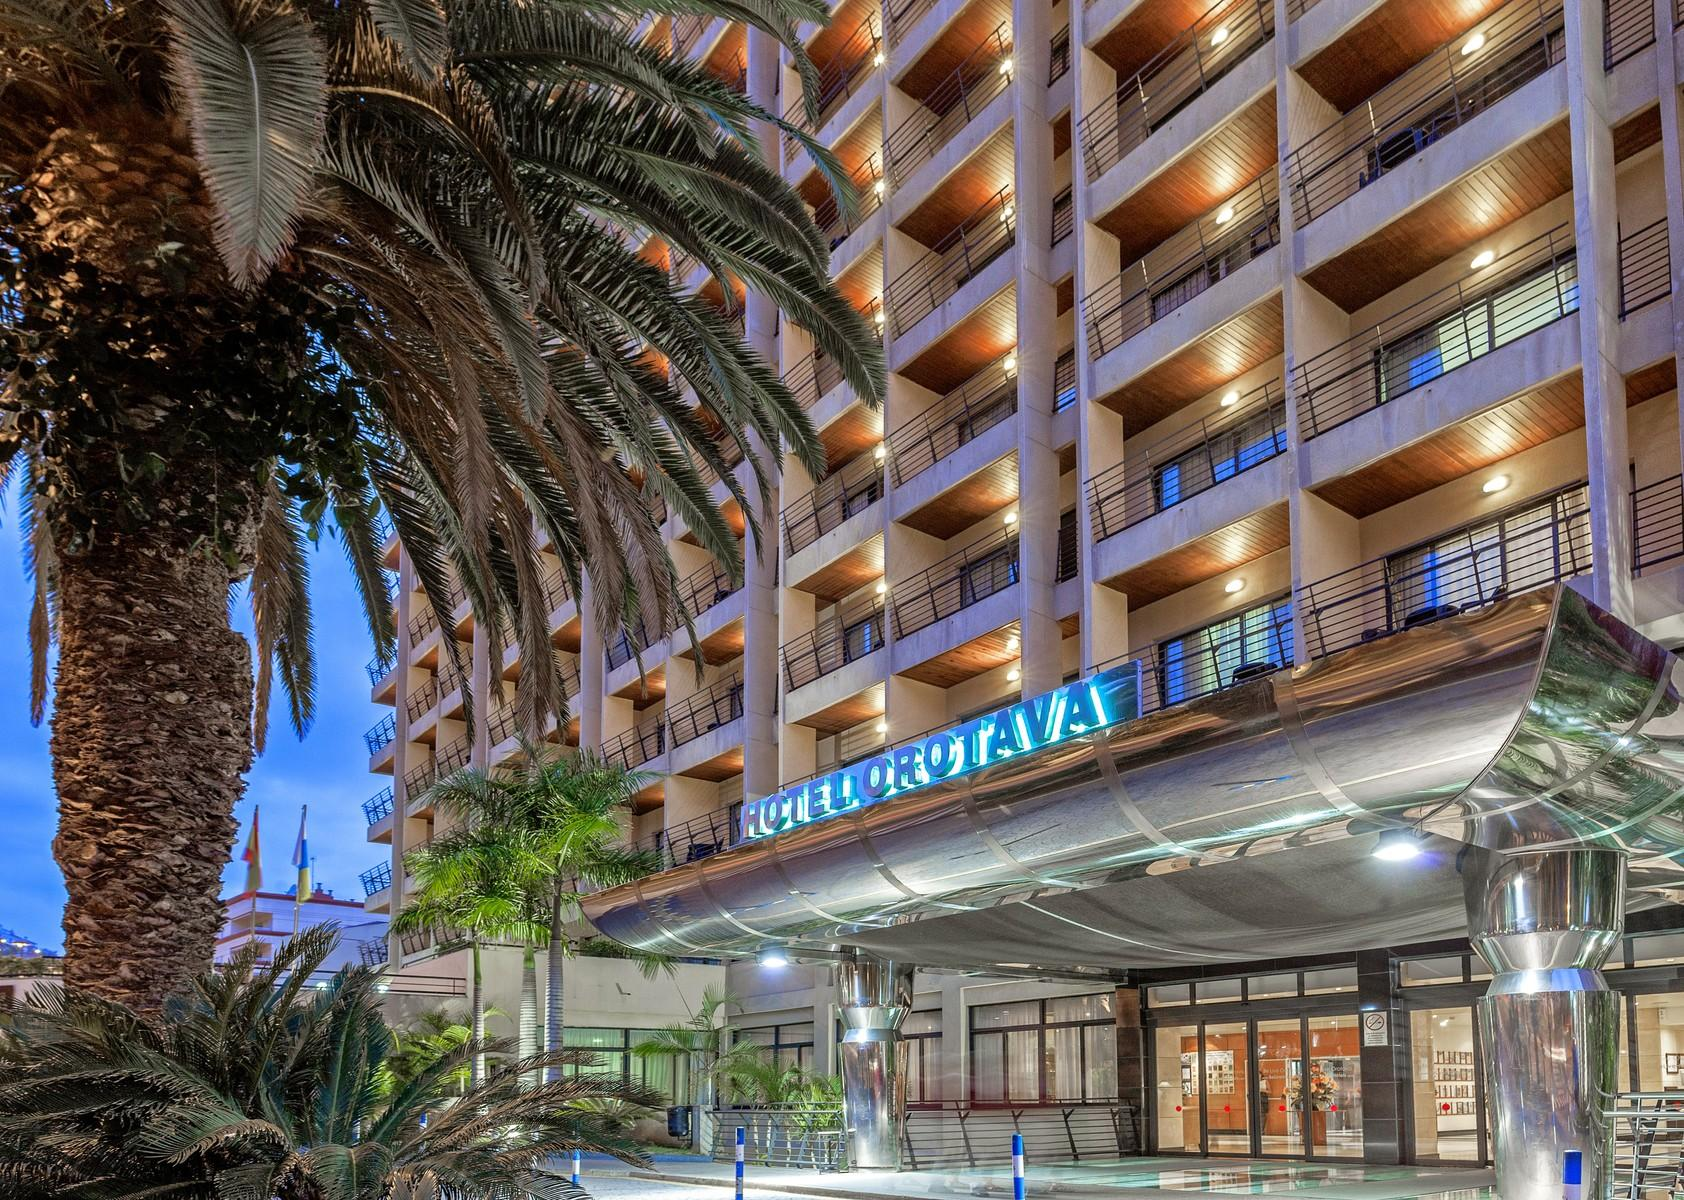 Be Live Experience Orotava in Puerto de la Cruz, Tenerife, Canary Islands